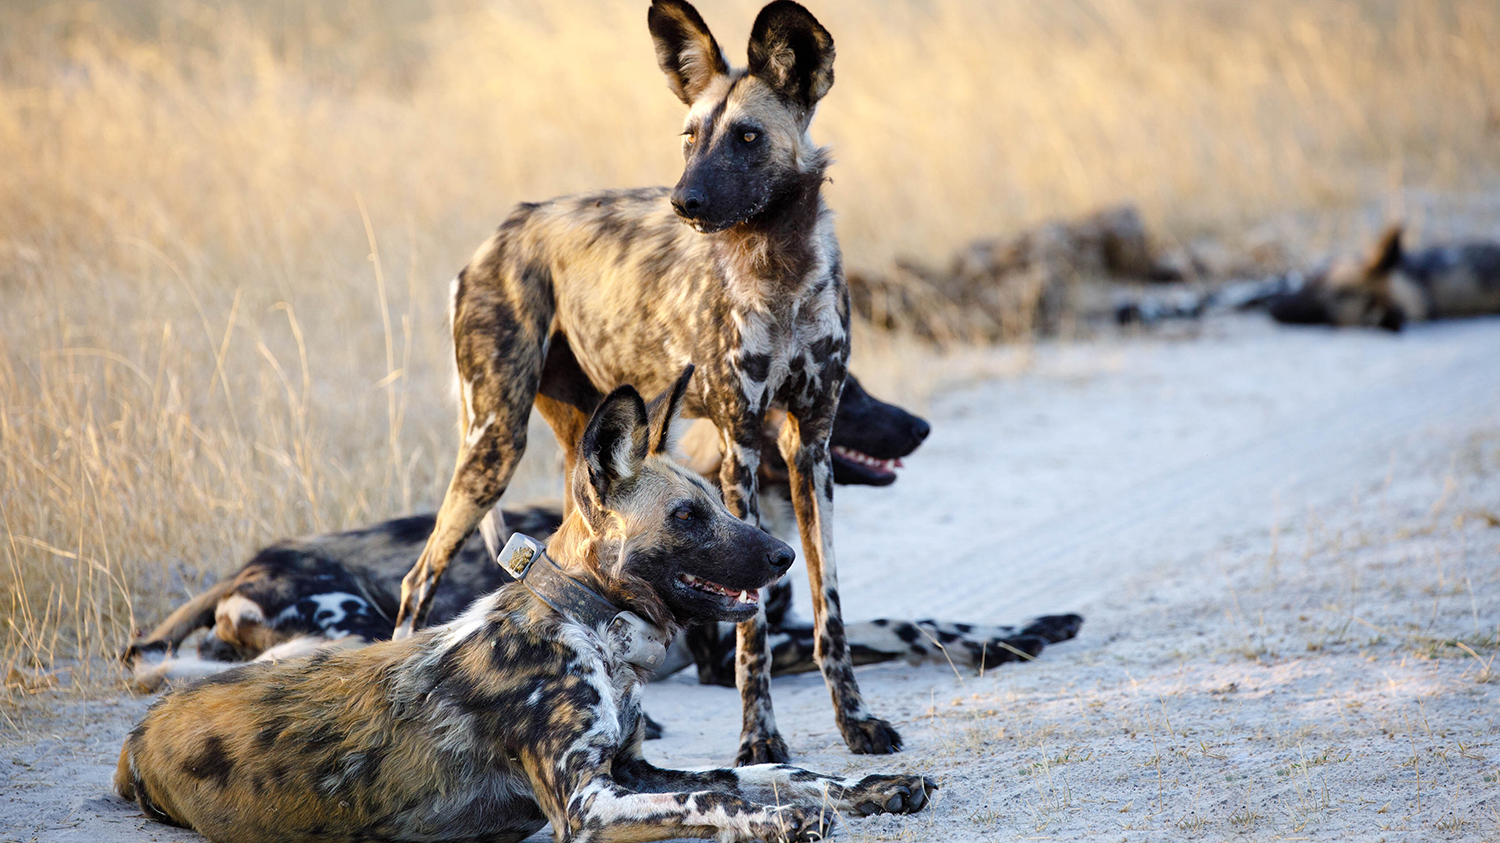 African wild dogs in the Moremi Game Reserve in northern Botswana. The dog in the foreground has been equipped with a GPS collar that enables researchers to track the routes taken during the animal's dispersal. (Image: Arpat Ozgul/UZH)